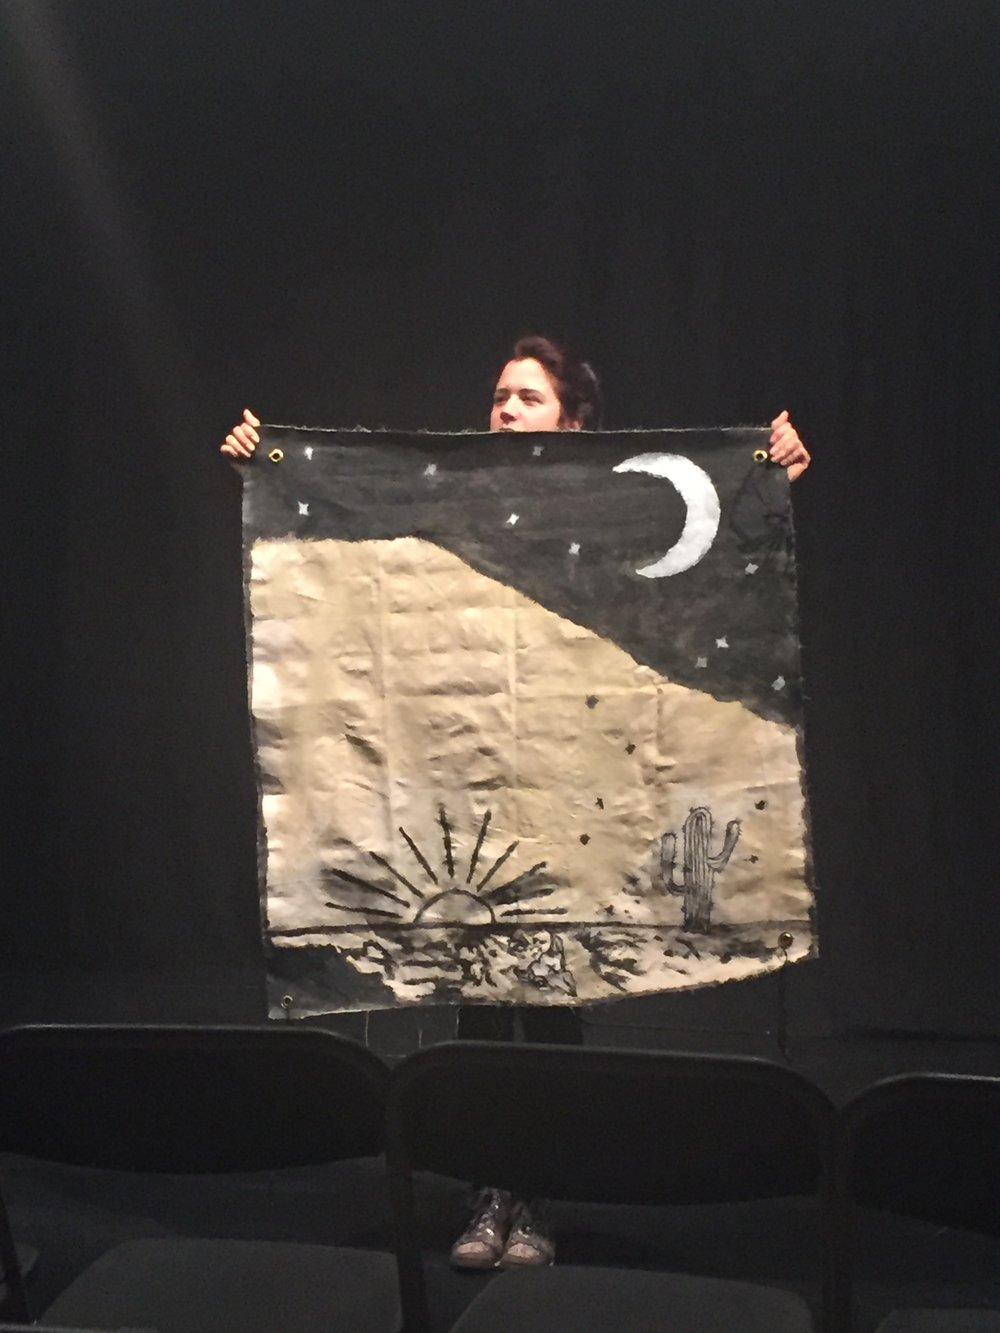 Natasa holding up the desert landscape pre-show.